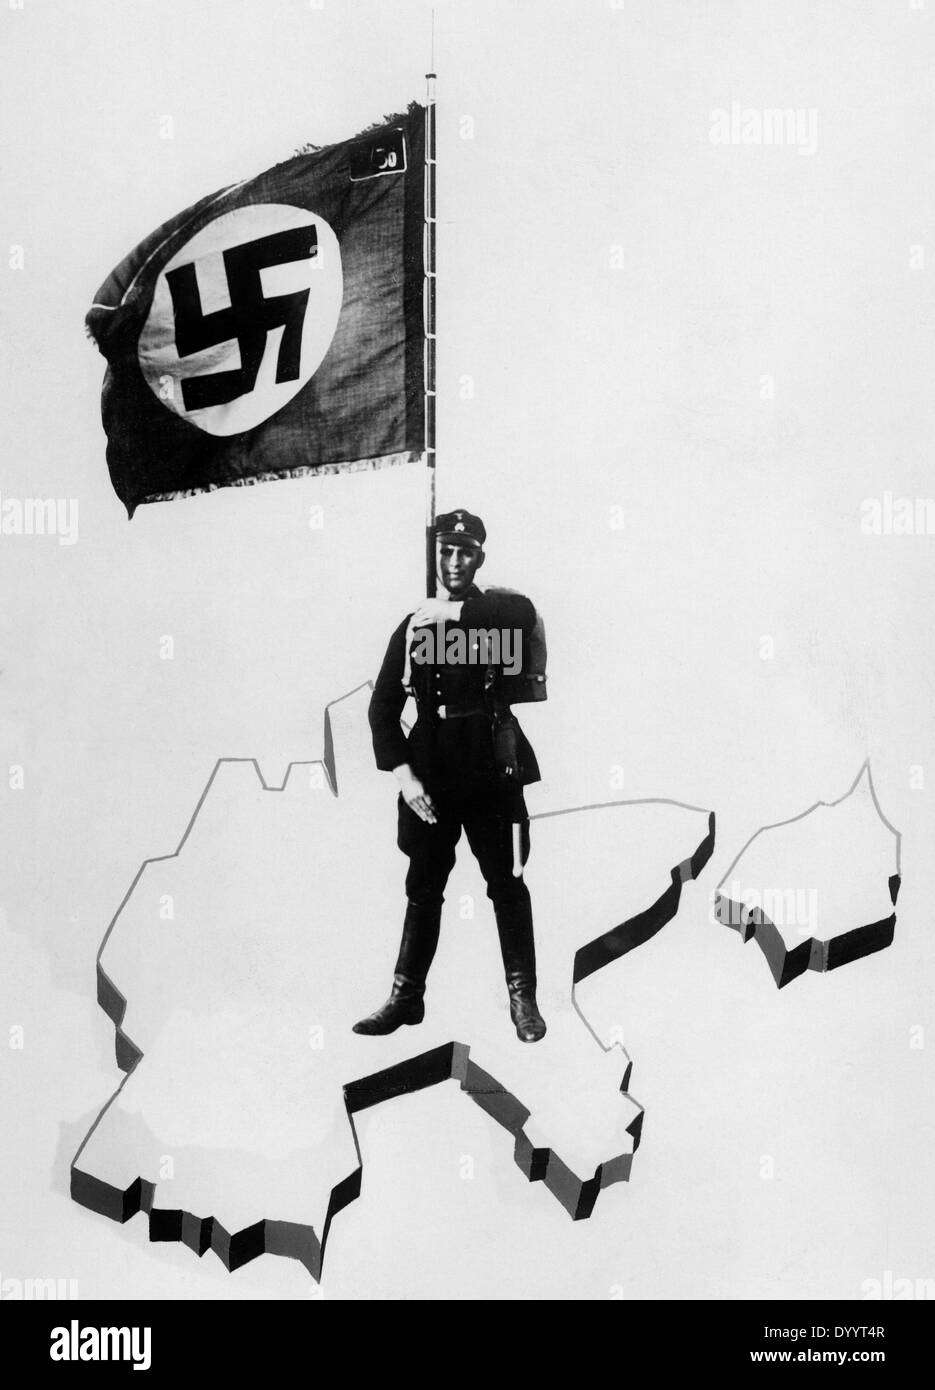 Propaganda poster of the SS, 1934 - Stock Image